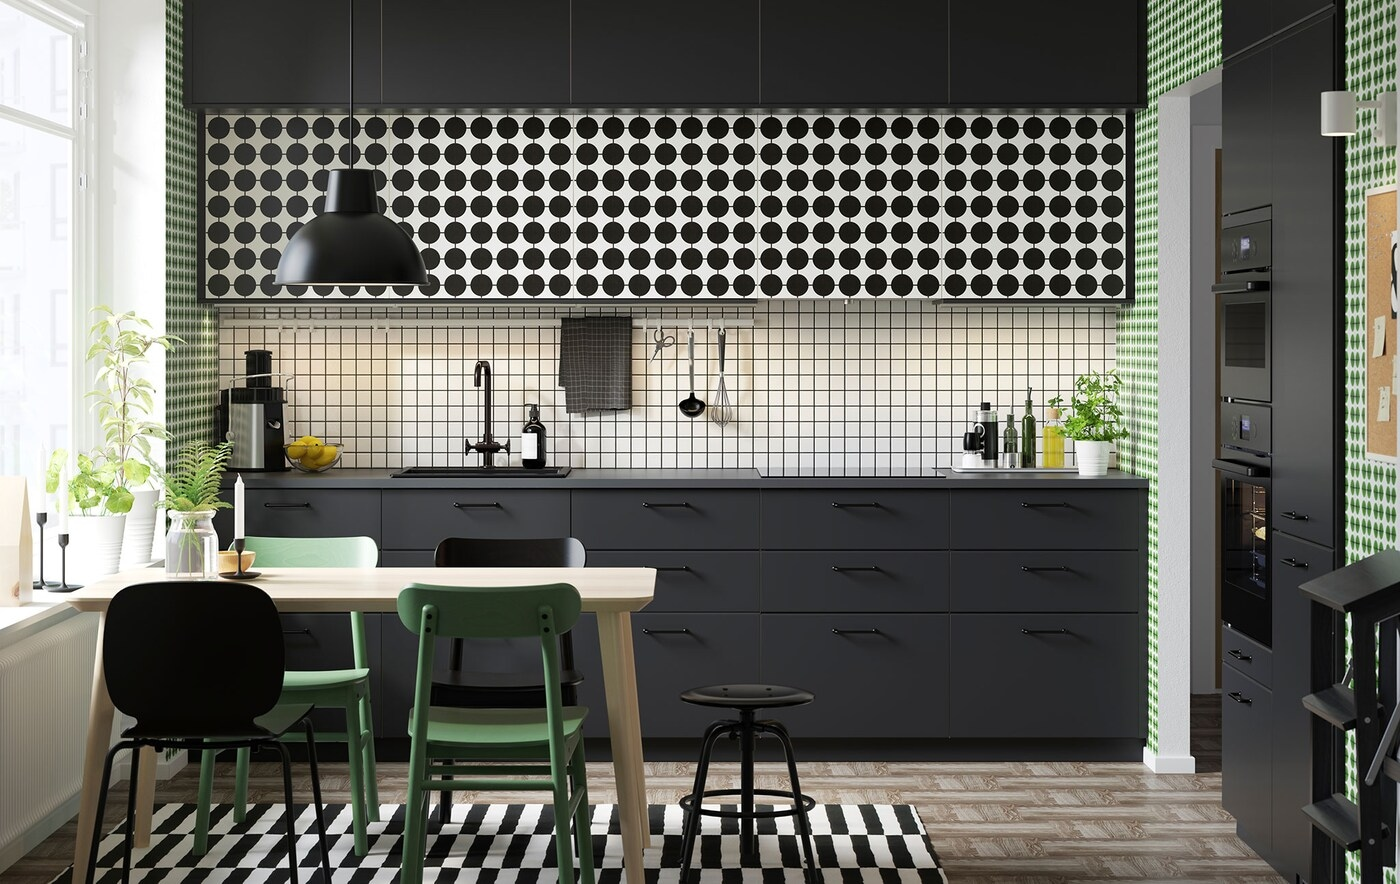 IKEA METOD kitchen, customised with YTTERBYN door fronts, and a kitchen table with chairs.